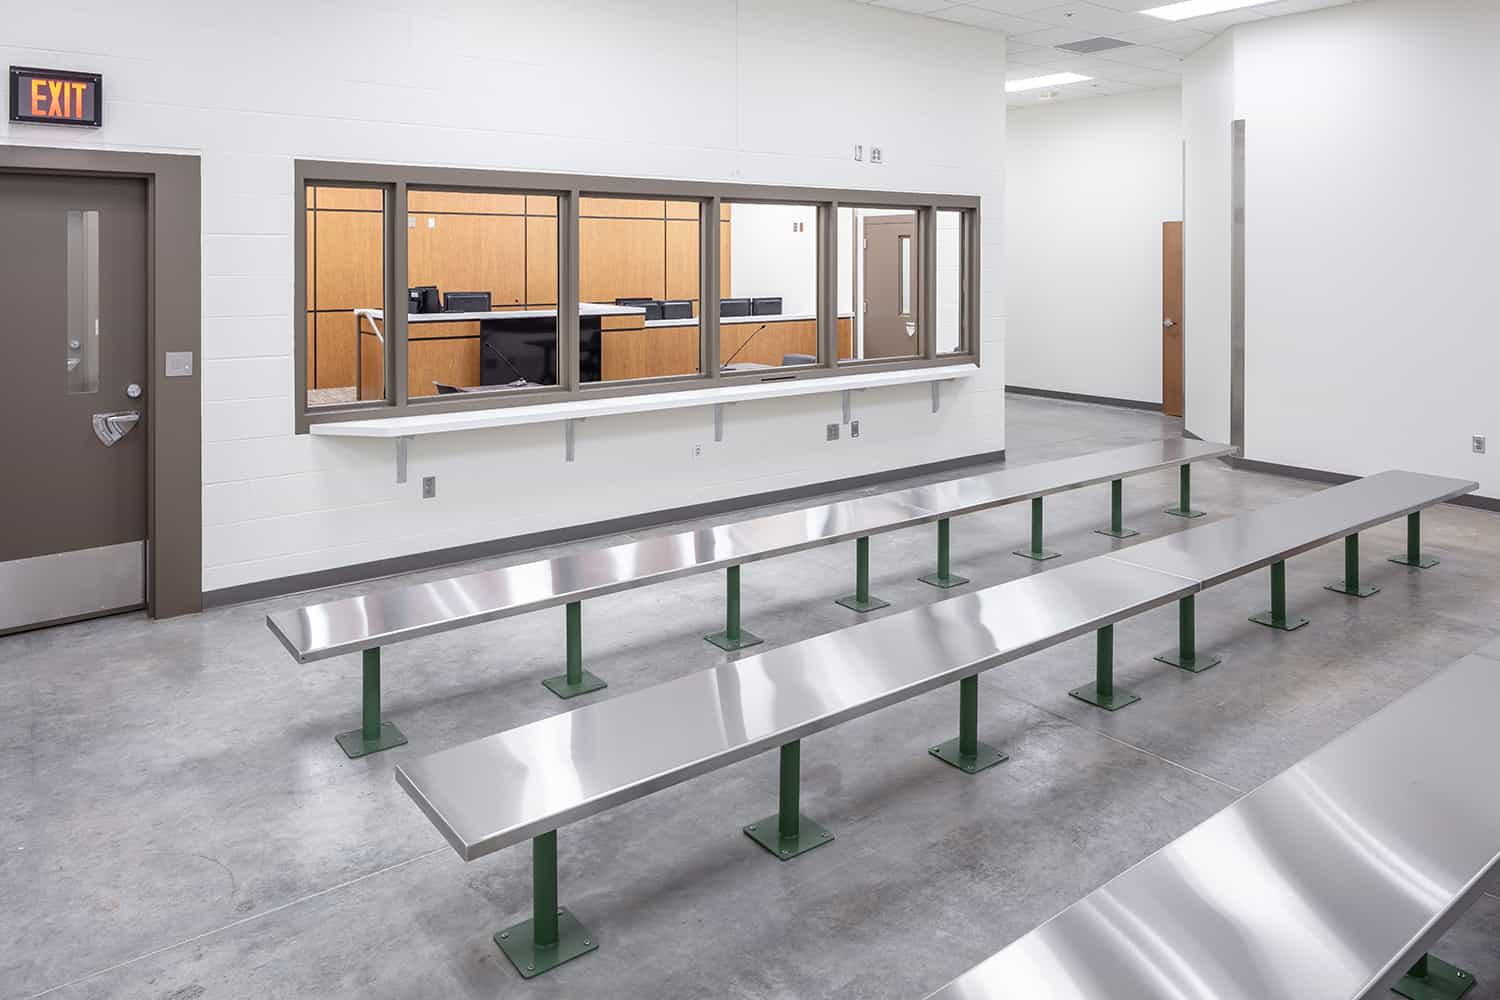 Waiting benches outside of the jail's courtroom.